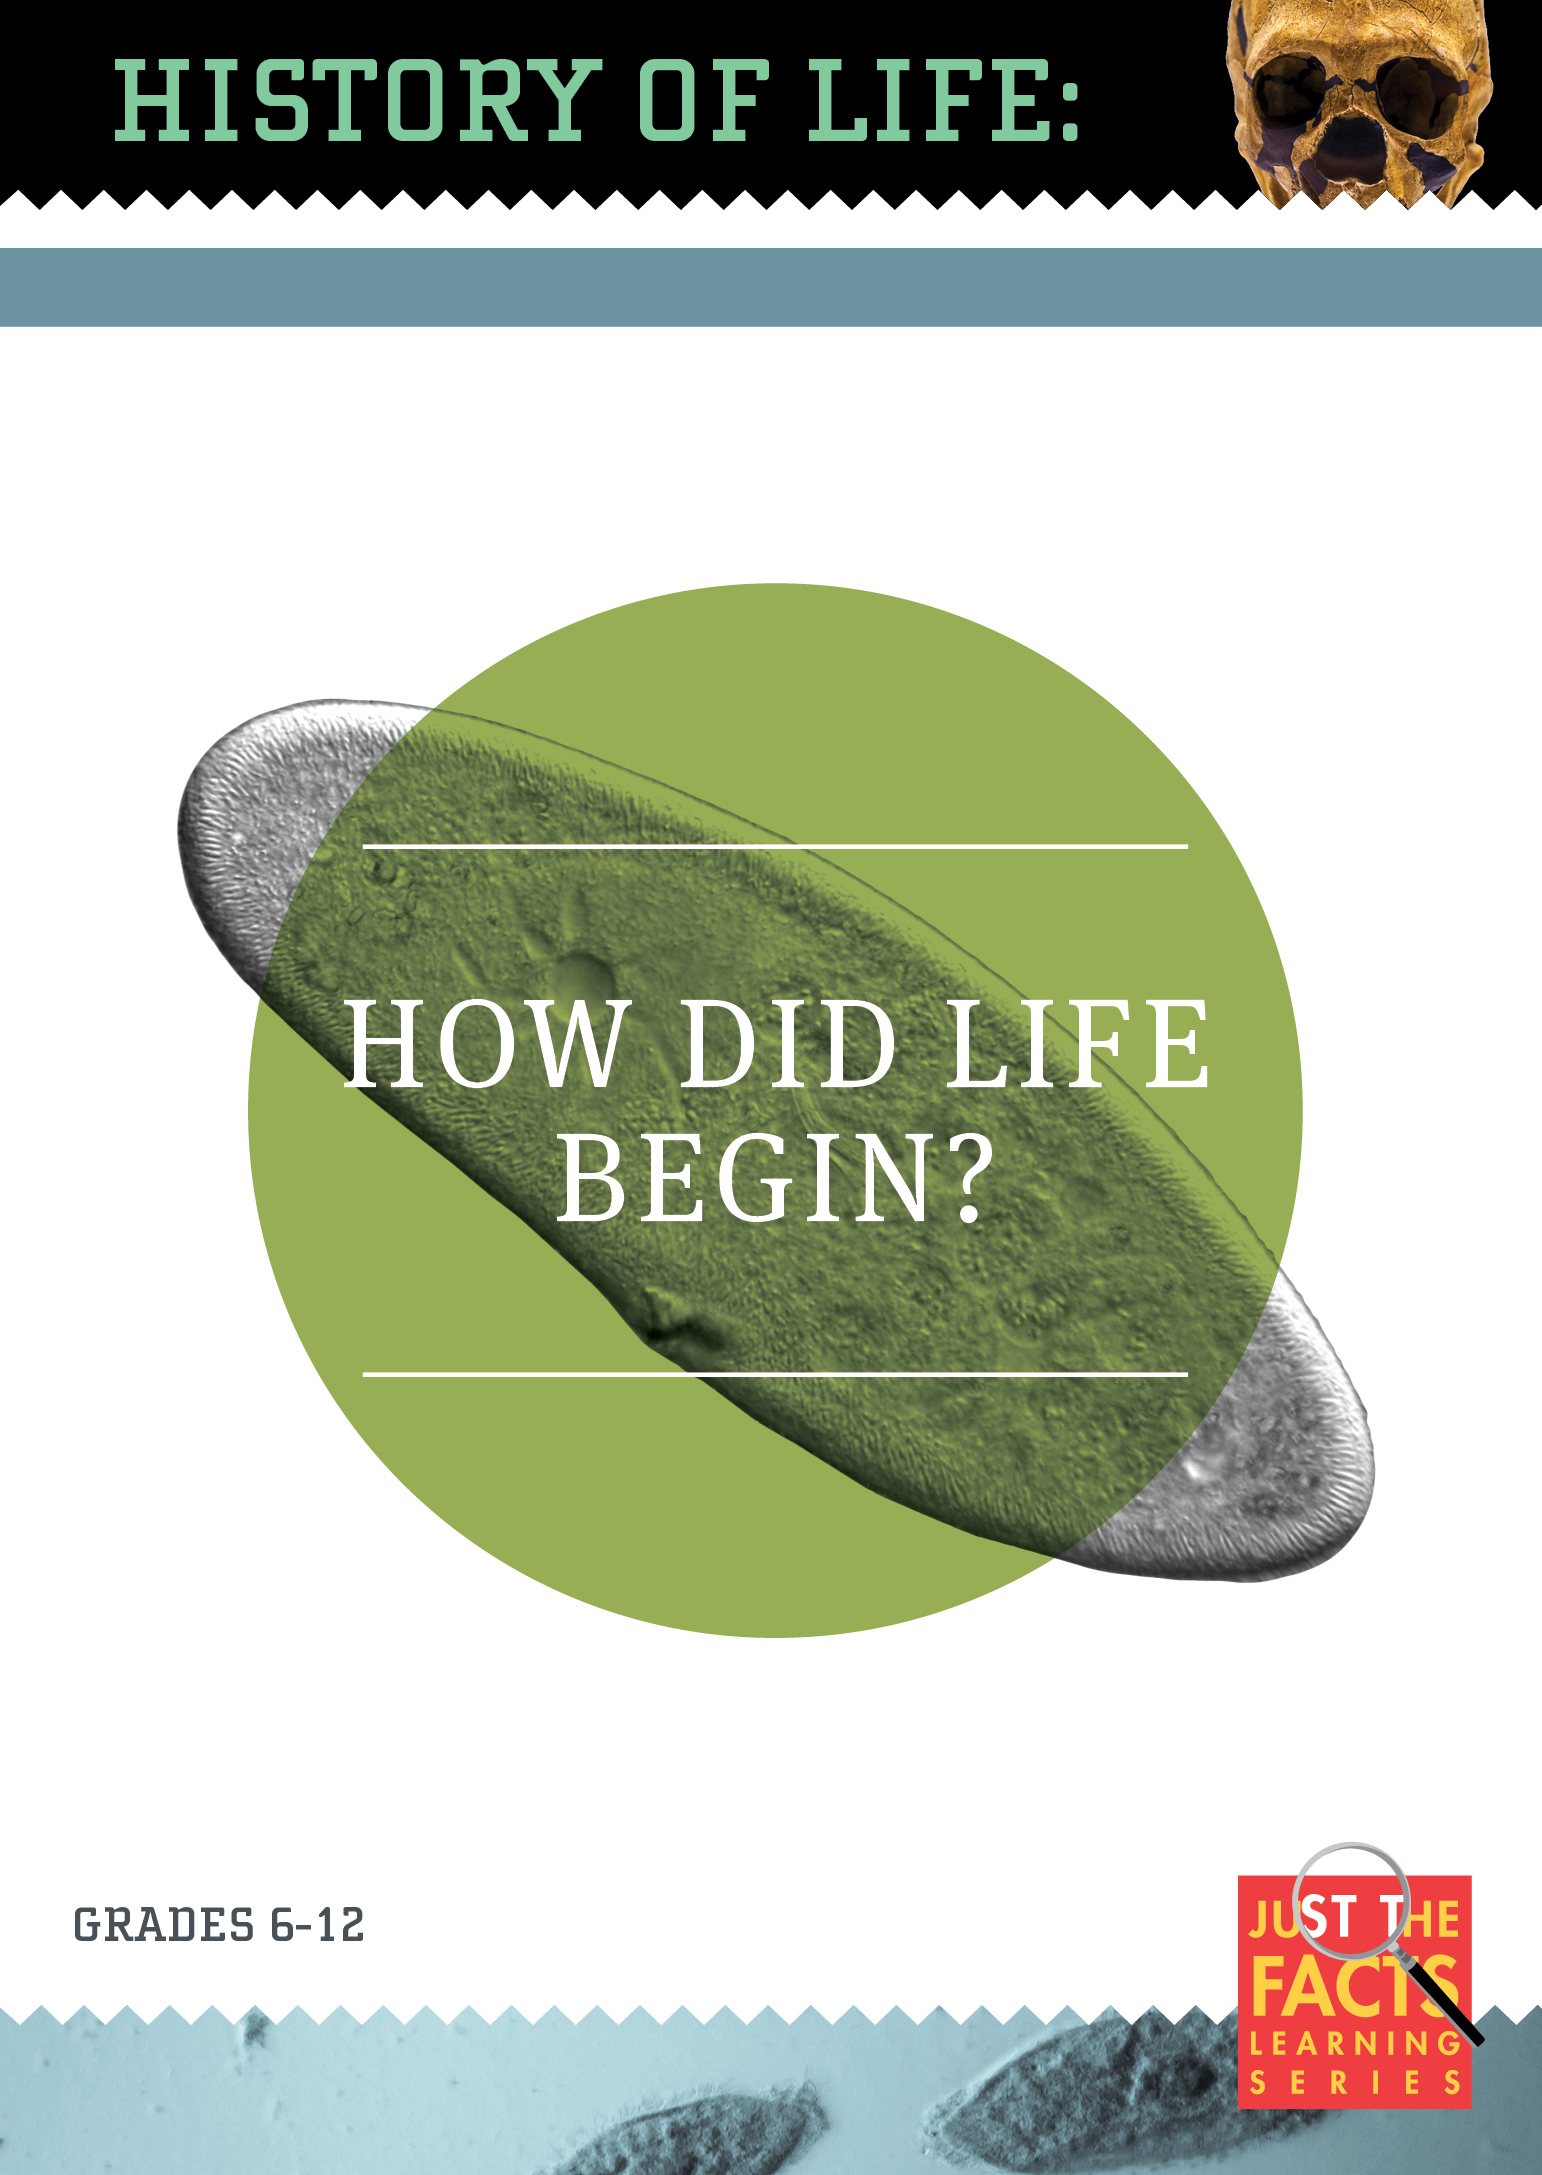 History of Life: How Did Life Begin?